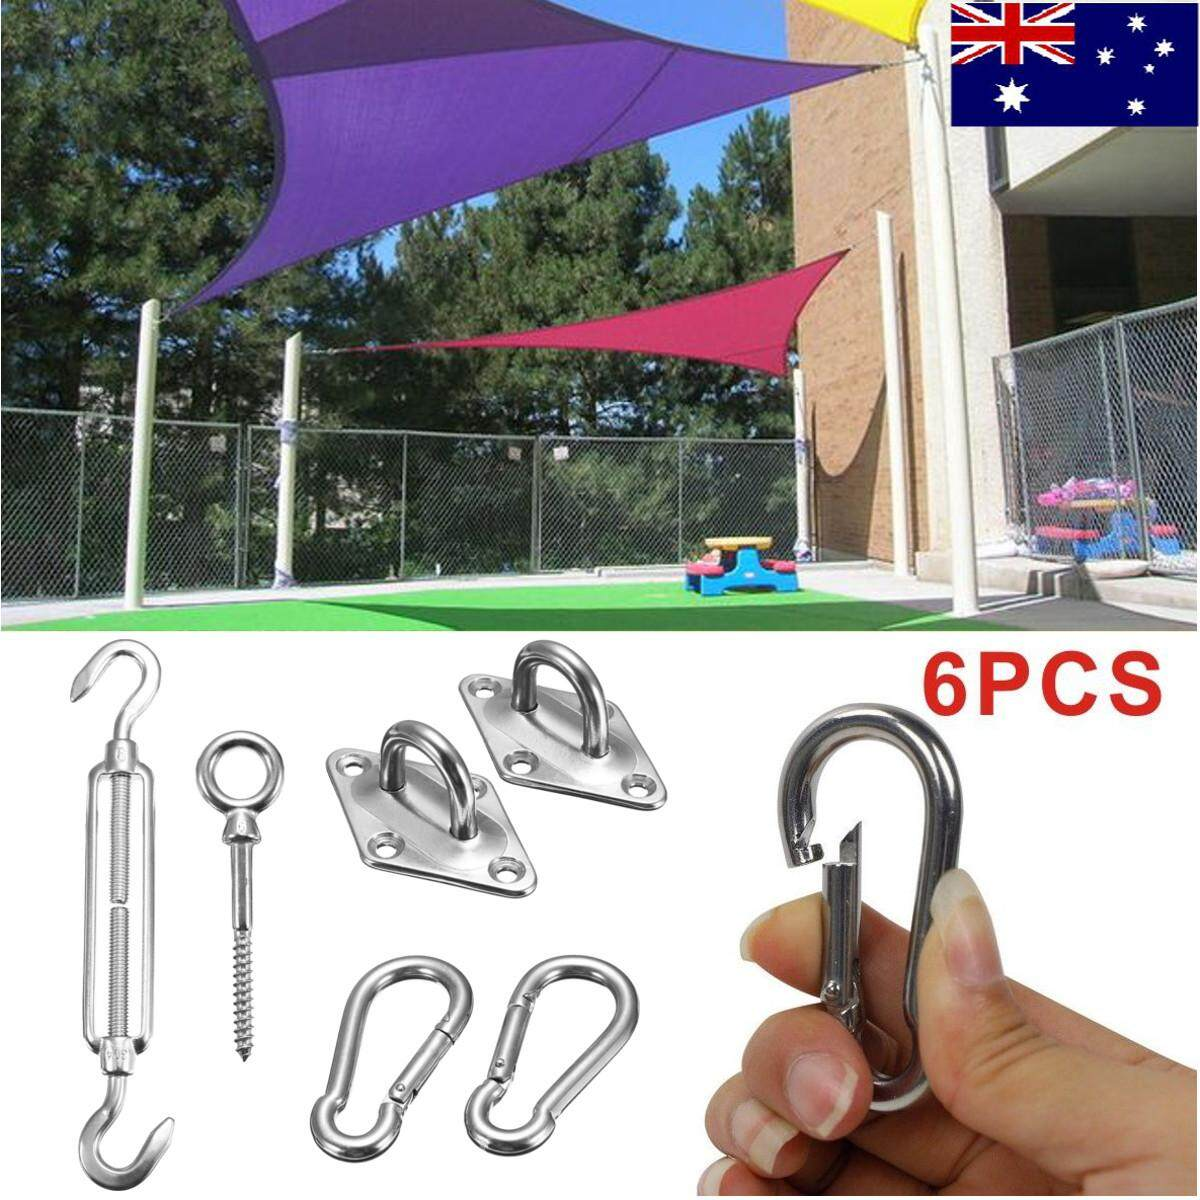 6Pcs Stainless Steel Sun Sail Shade Fixings Fittings Kits Garden Awning Canopy